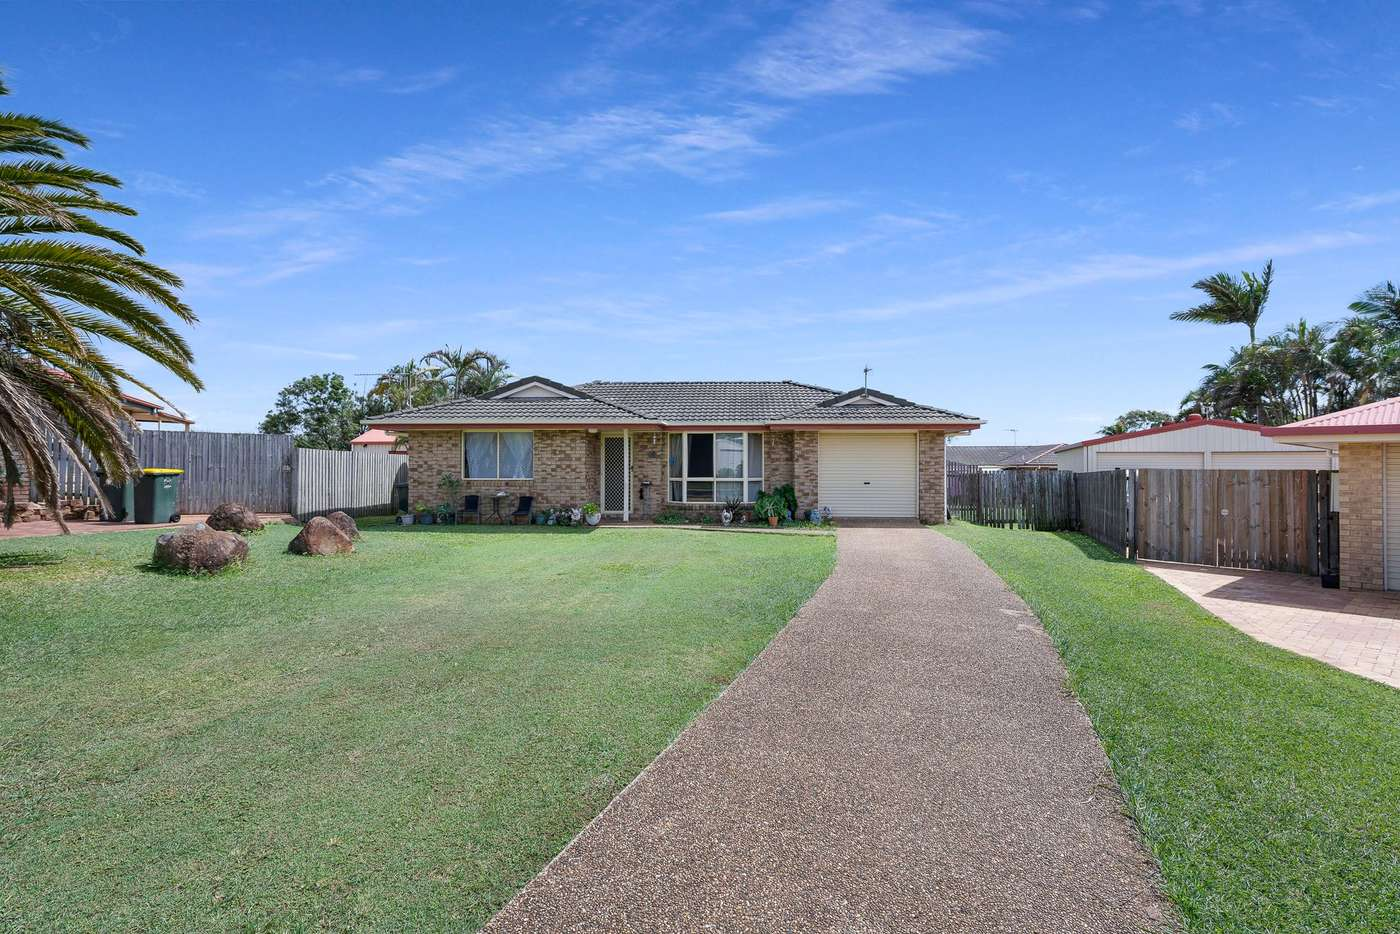 Main view of Homely house listing, 8 Metcalfe Court, Kalkie QLD 4670